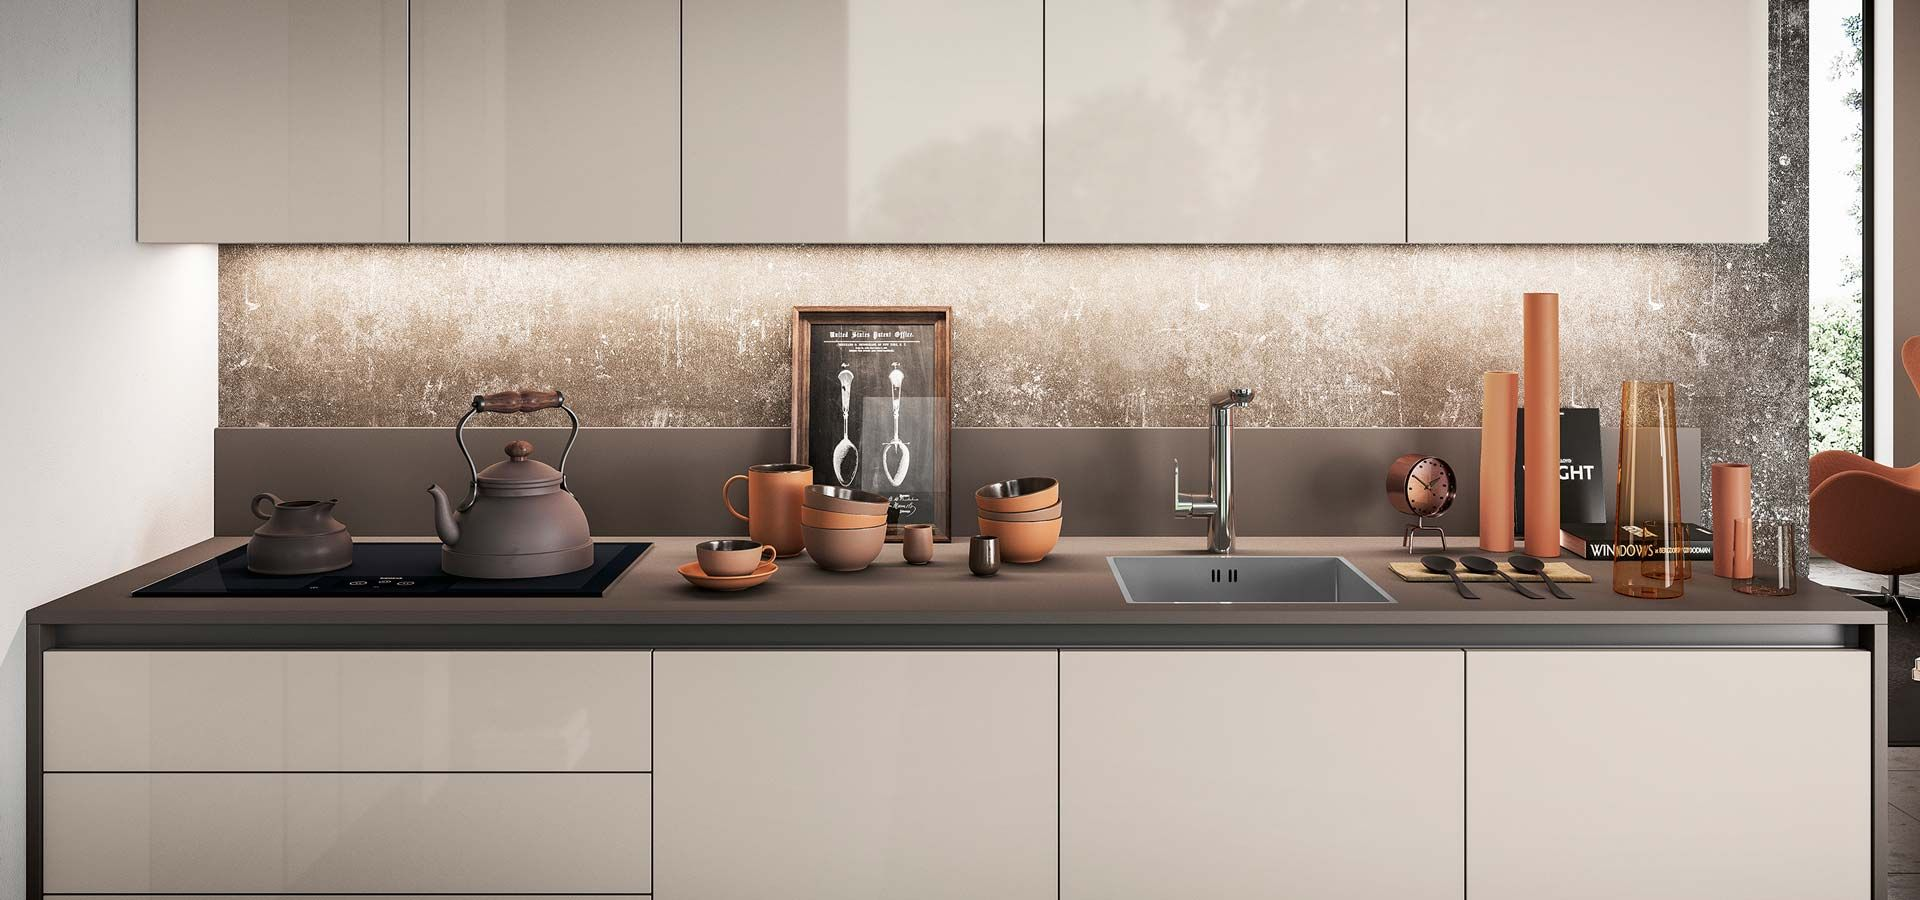 Italian kitchen company recommended by architects who liken their ...